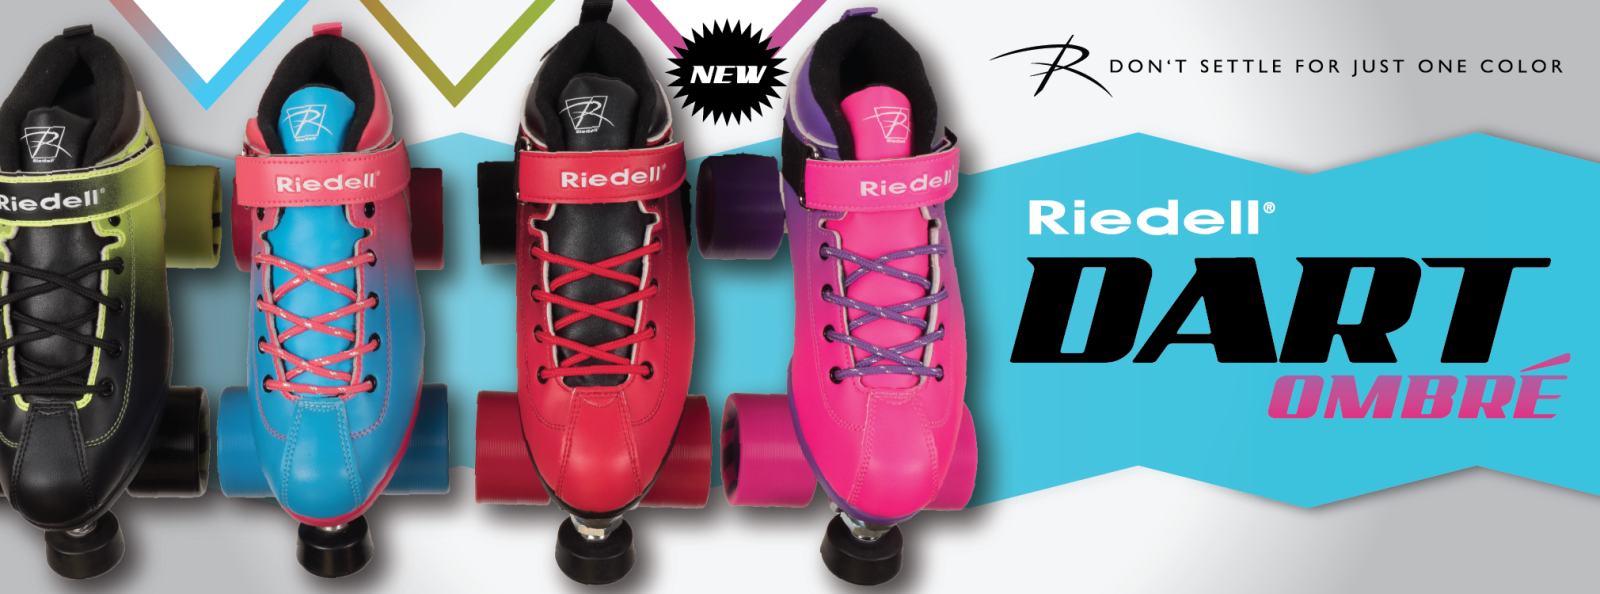 Buy Now - All new Riedell Dart Ombre colors - Black-Red and Purple-Pink!